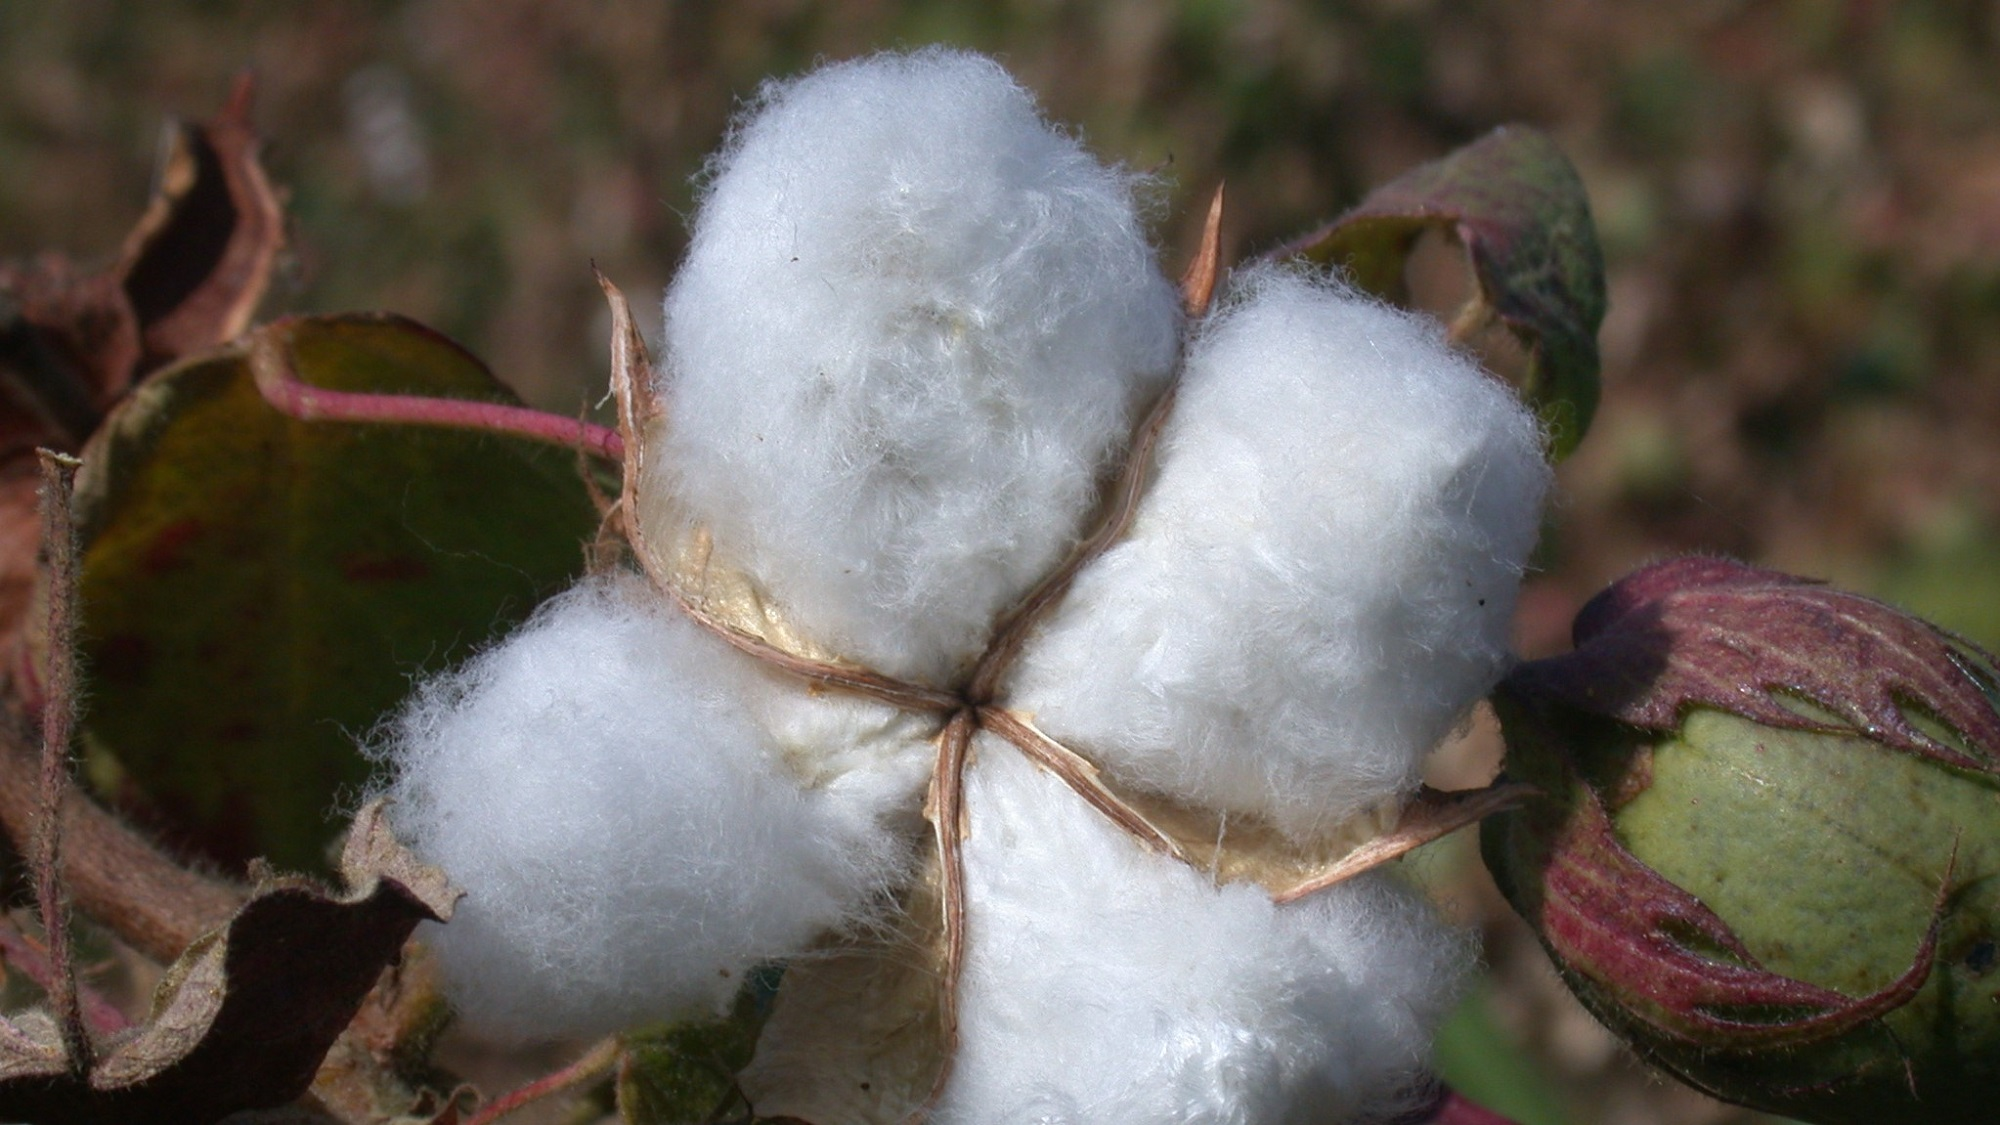 A cotton plant in Benin, West Africa